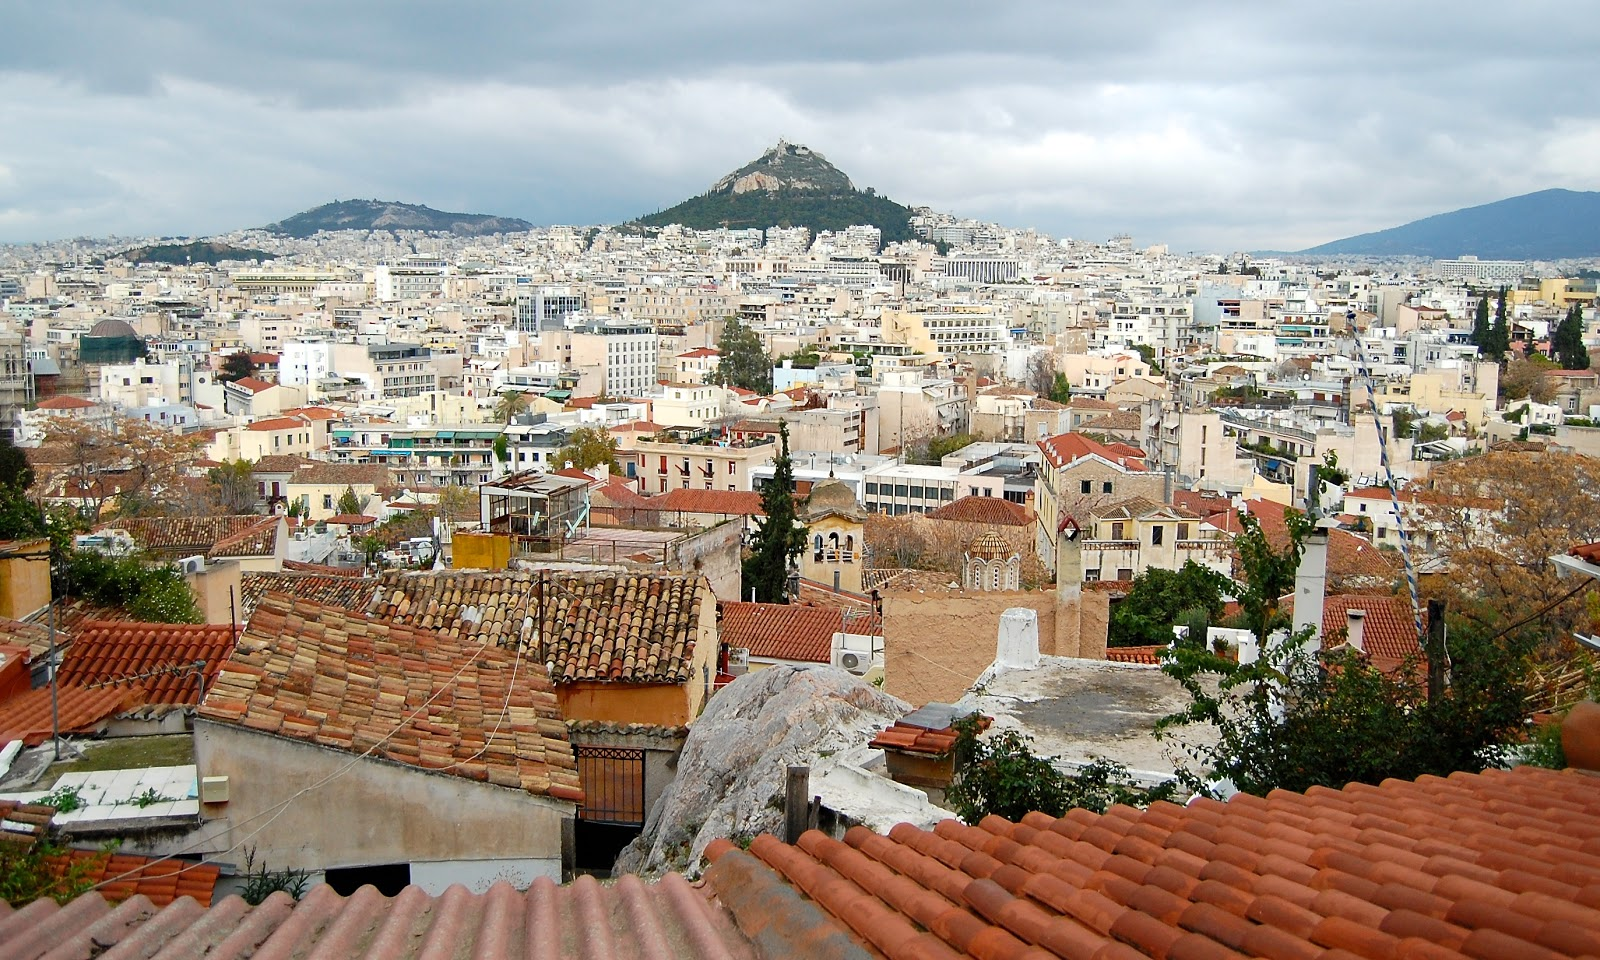 A view of Athens from Anafiotika at the base of the Acropolis